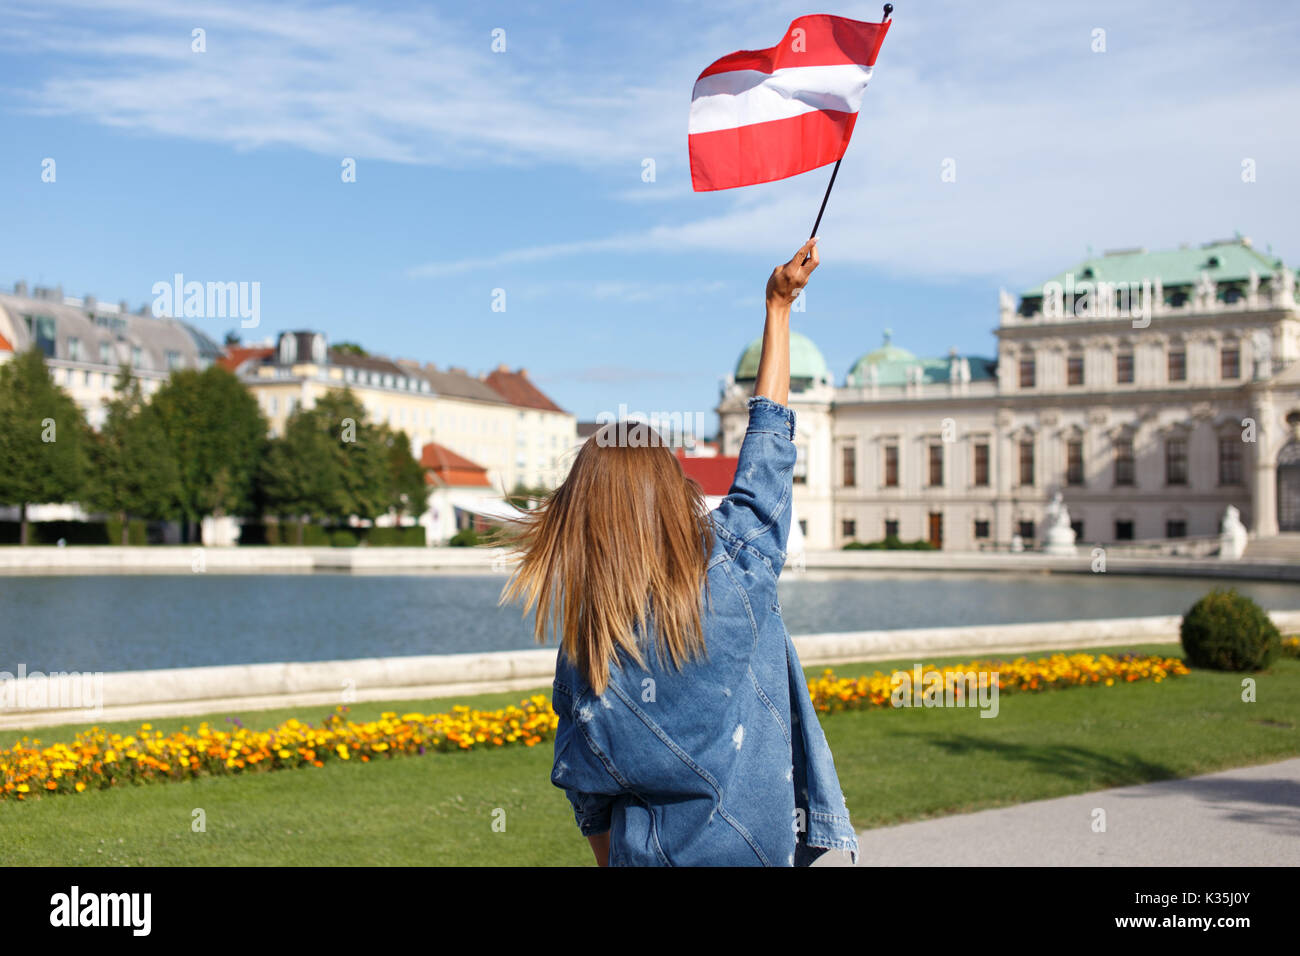 Young woman showing austrian flag in park outdoor - Stock Image